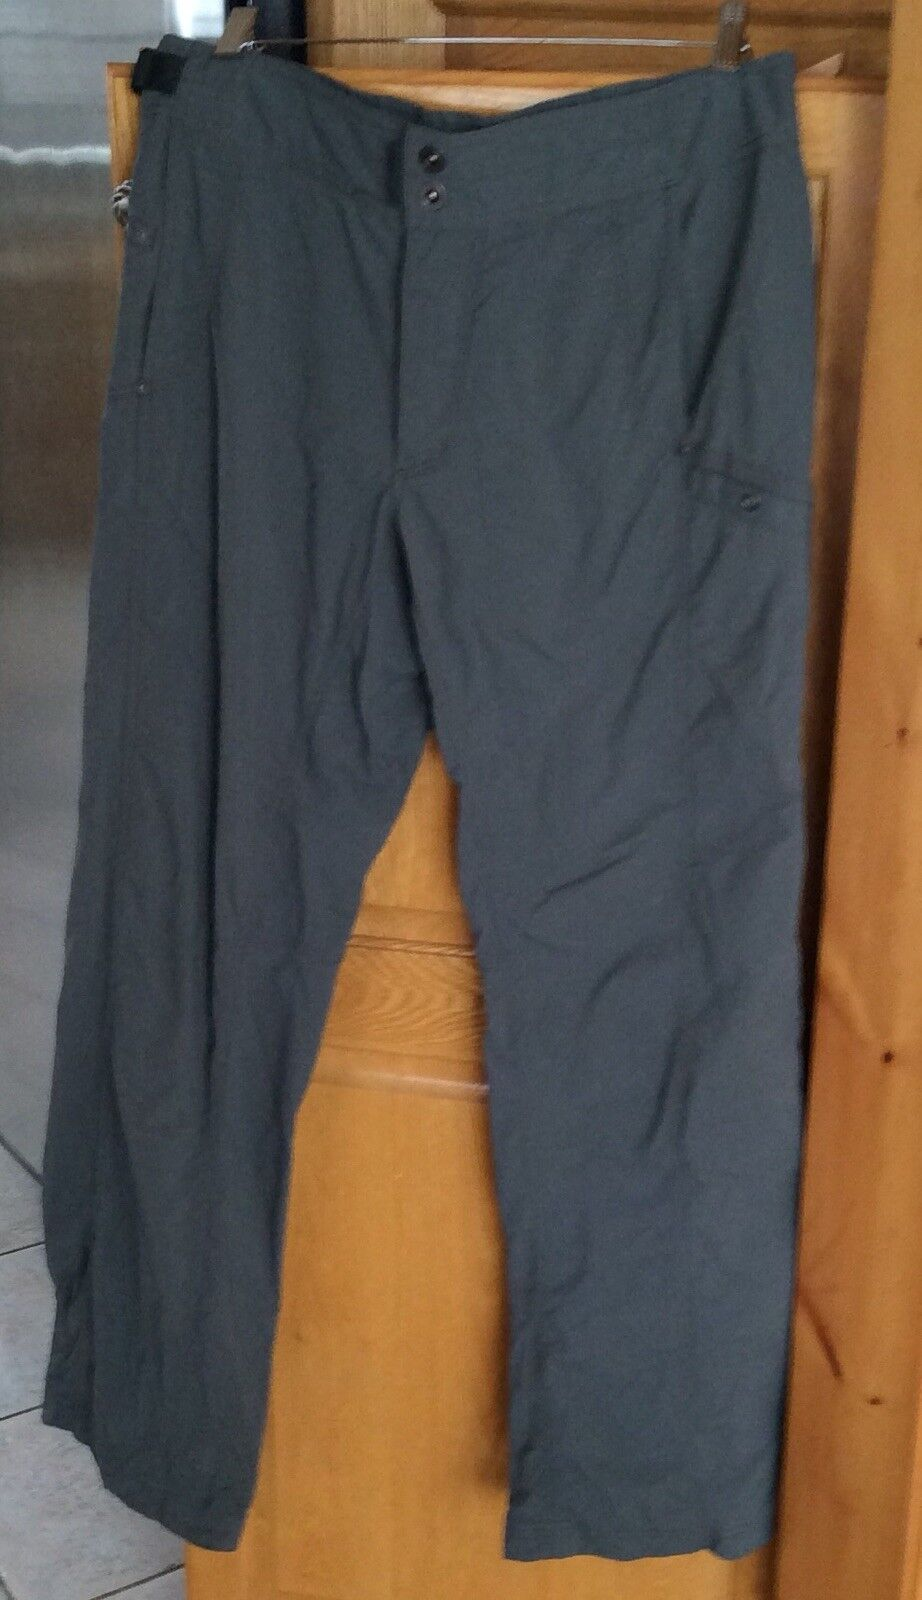 Royal Robbins Men's  outwear pants sz34 32,Charcoal  online shopping and fashion store